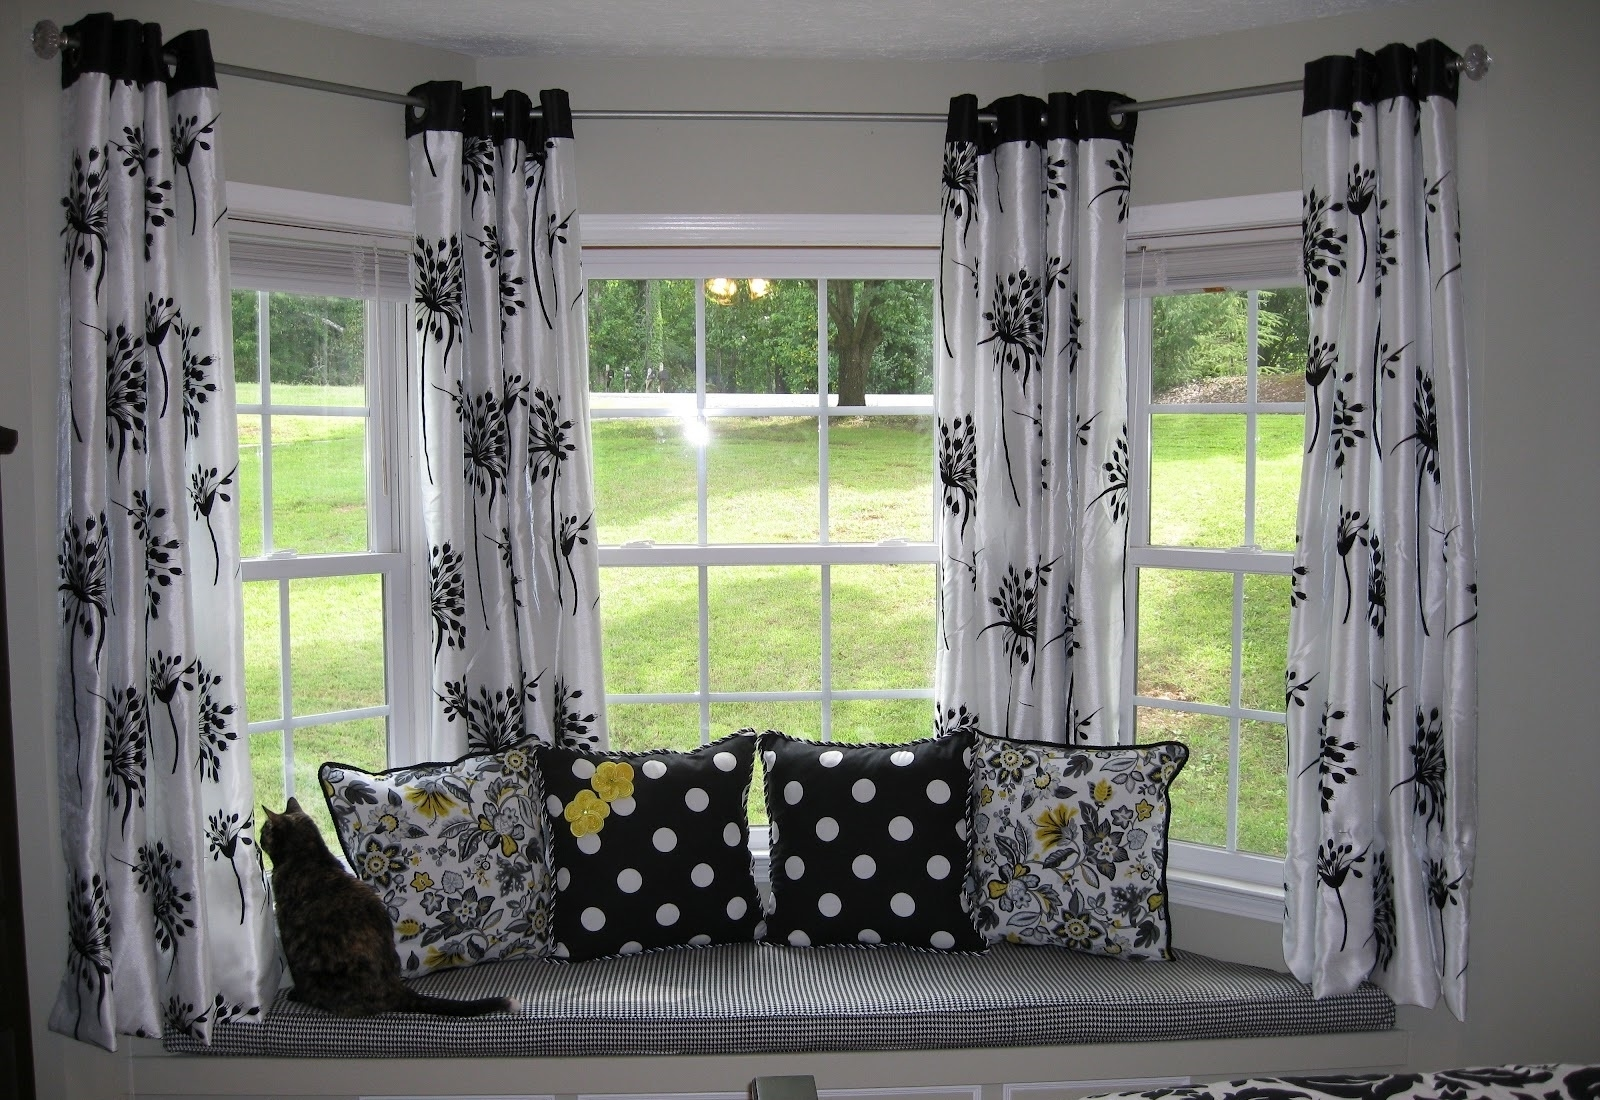 Featured Image of Bay Windows With Black White Curtain Decor